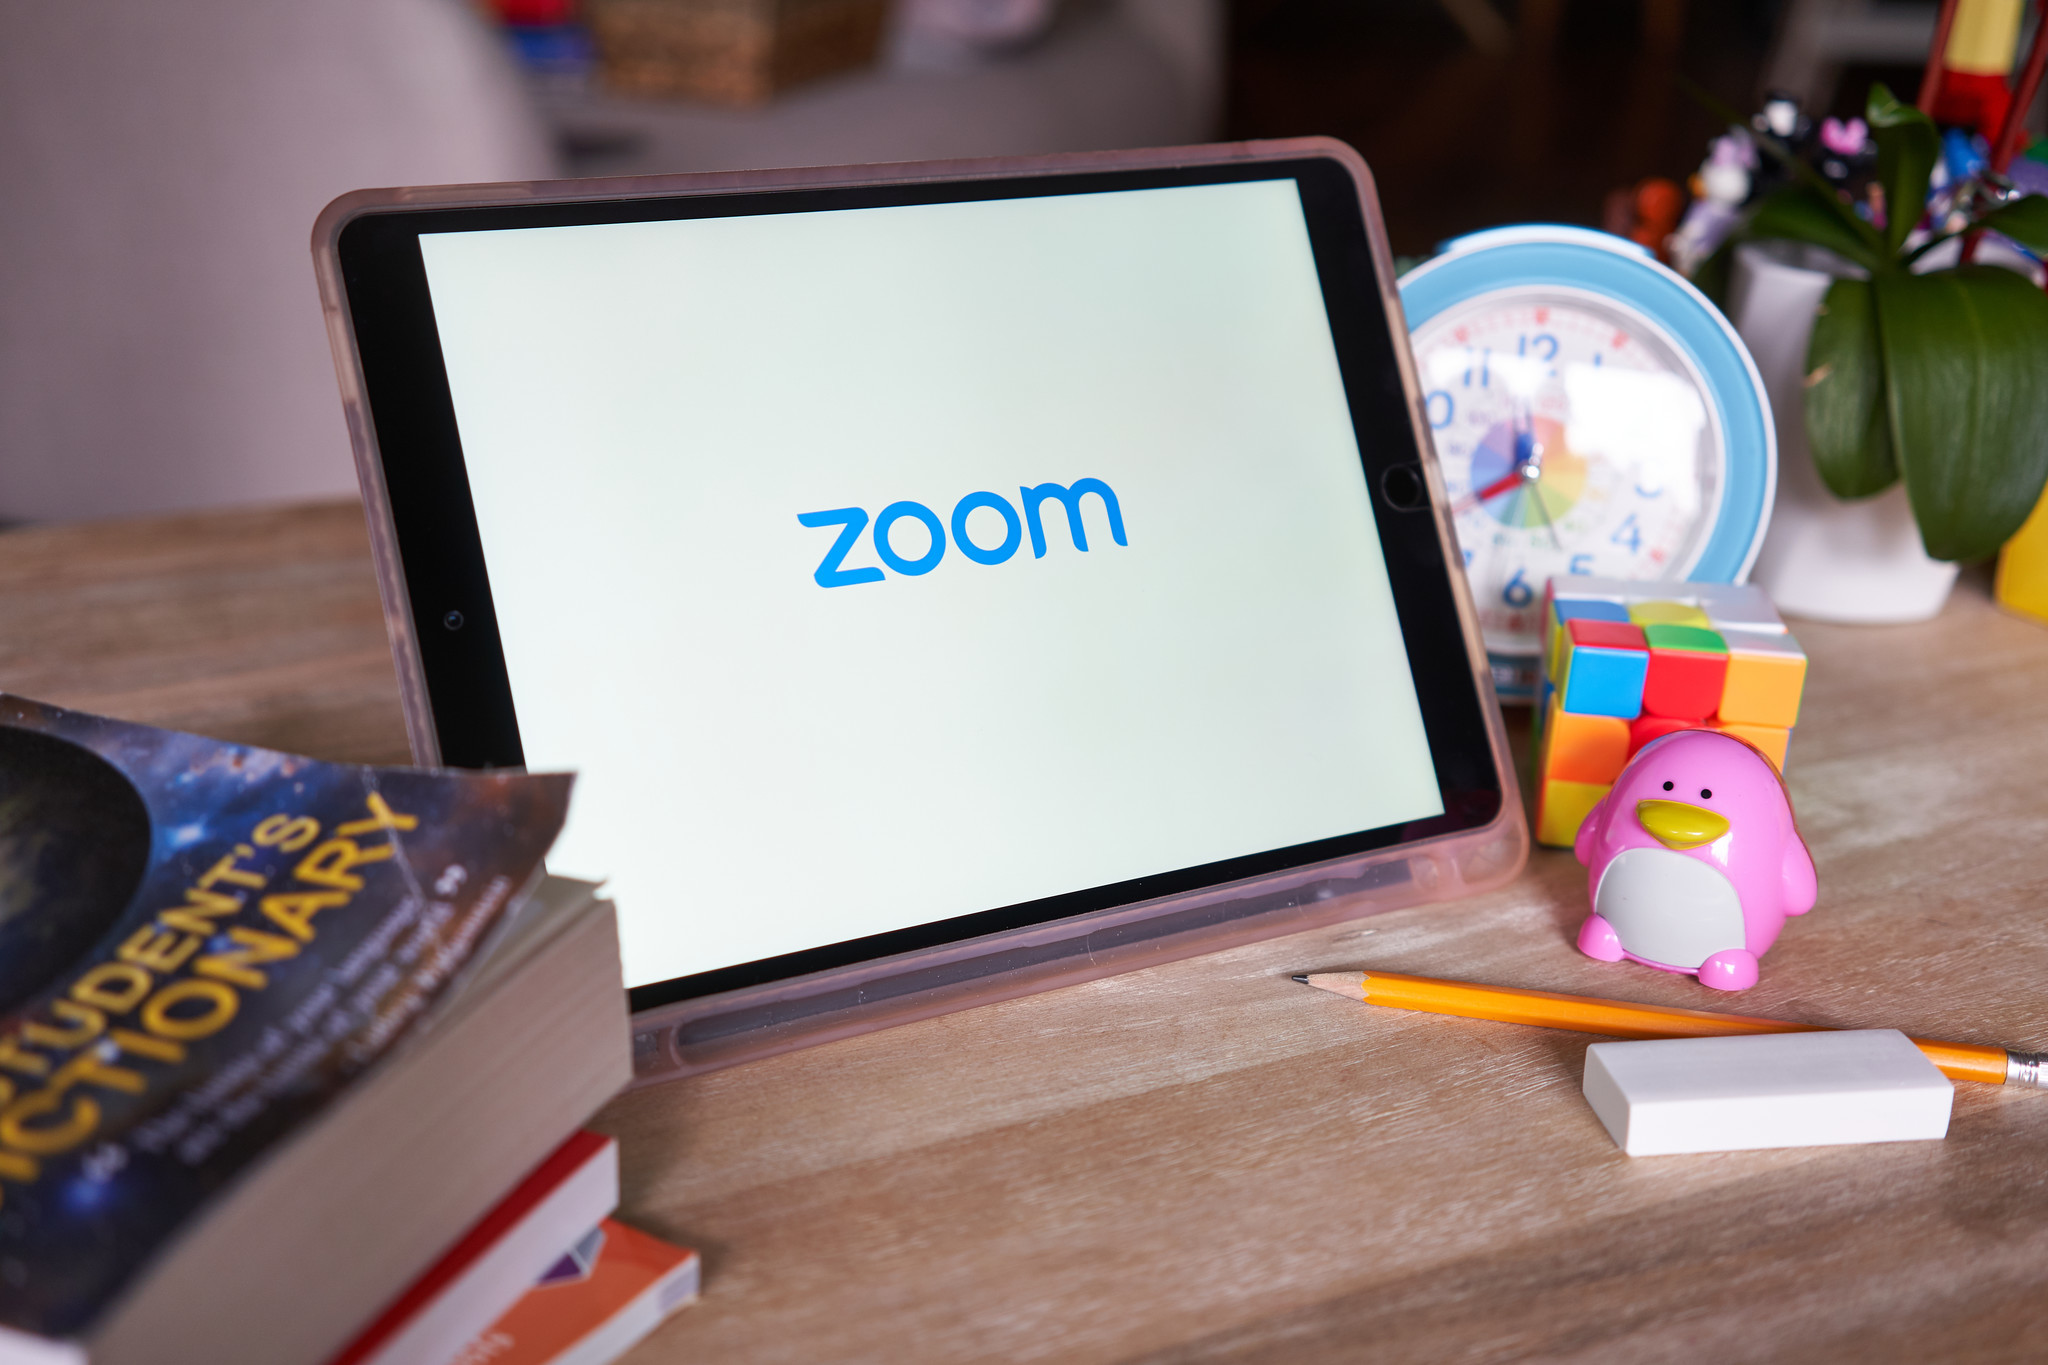 NYC Schools Chancellor Richard Carranza tells teachers to stop using Zoom for remote learning